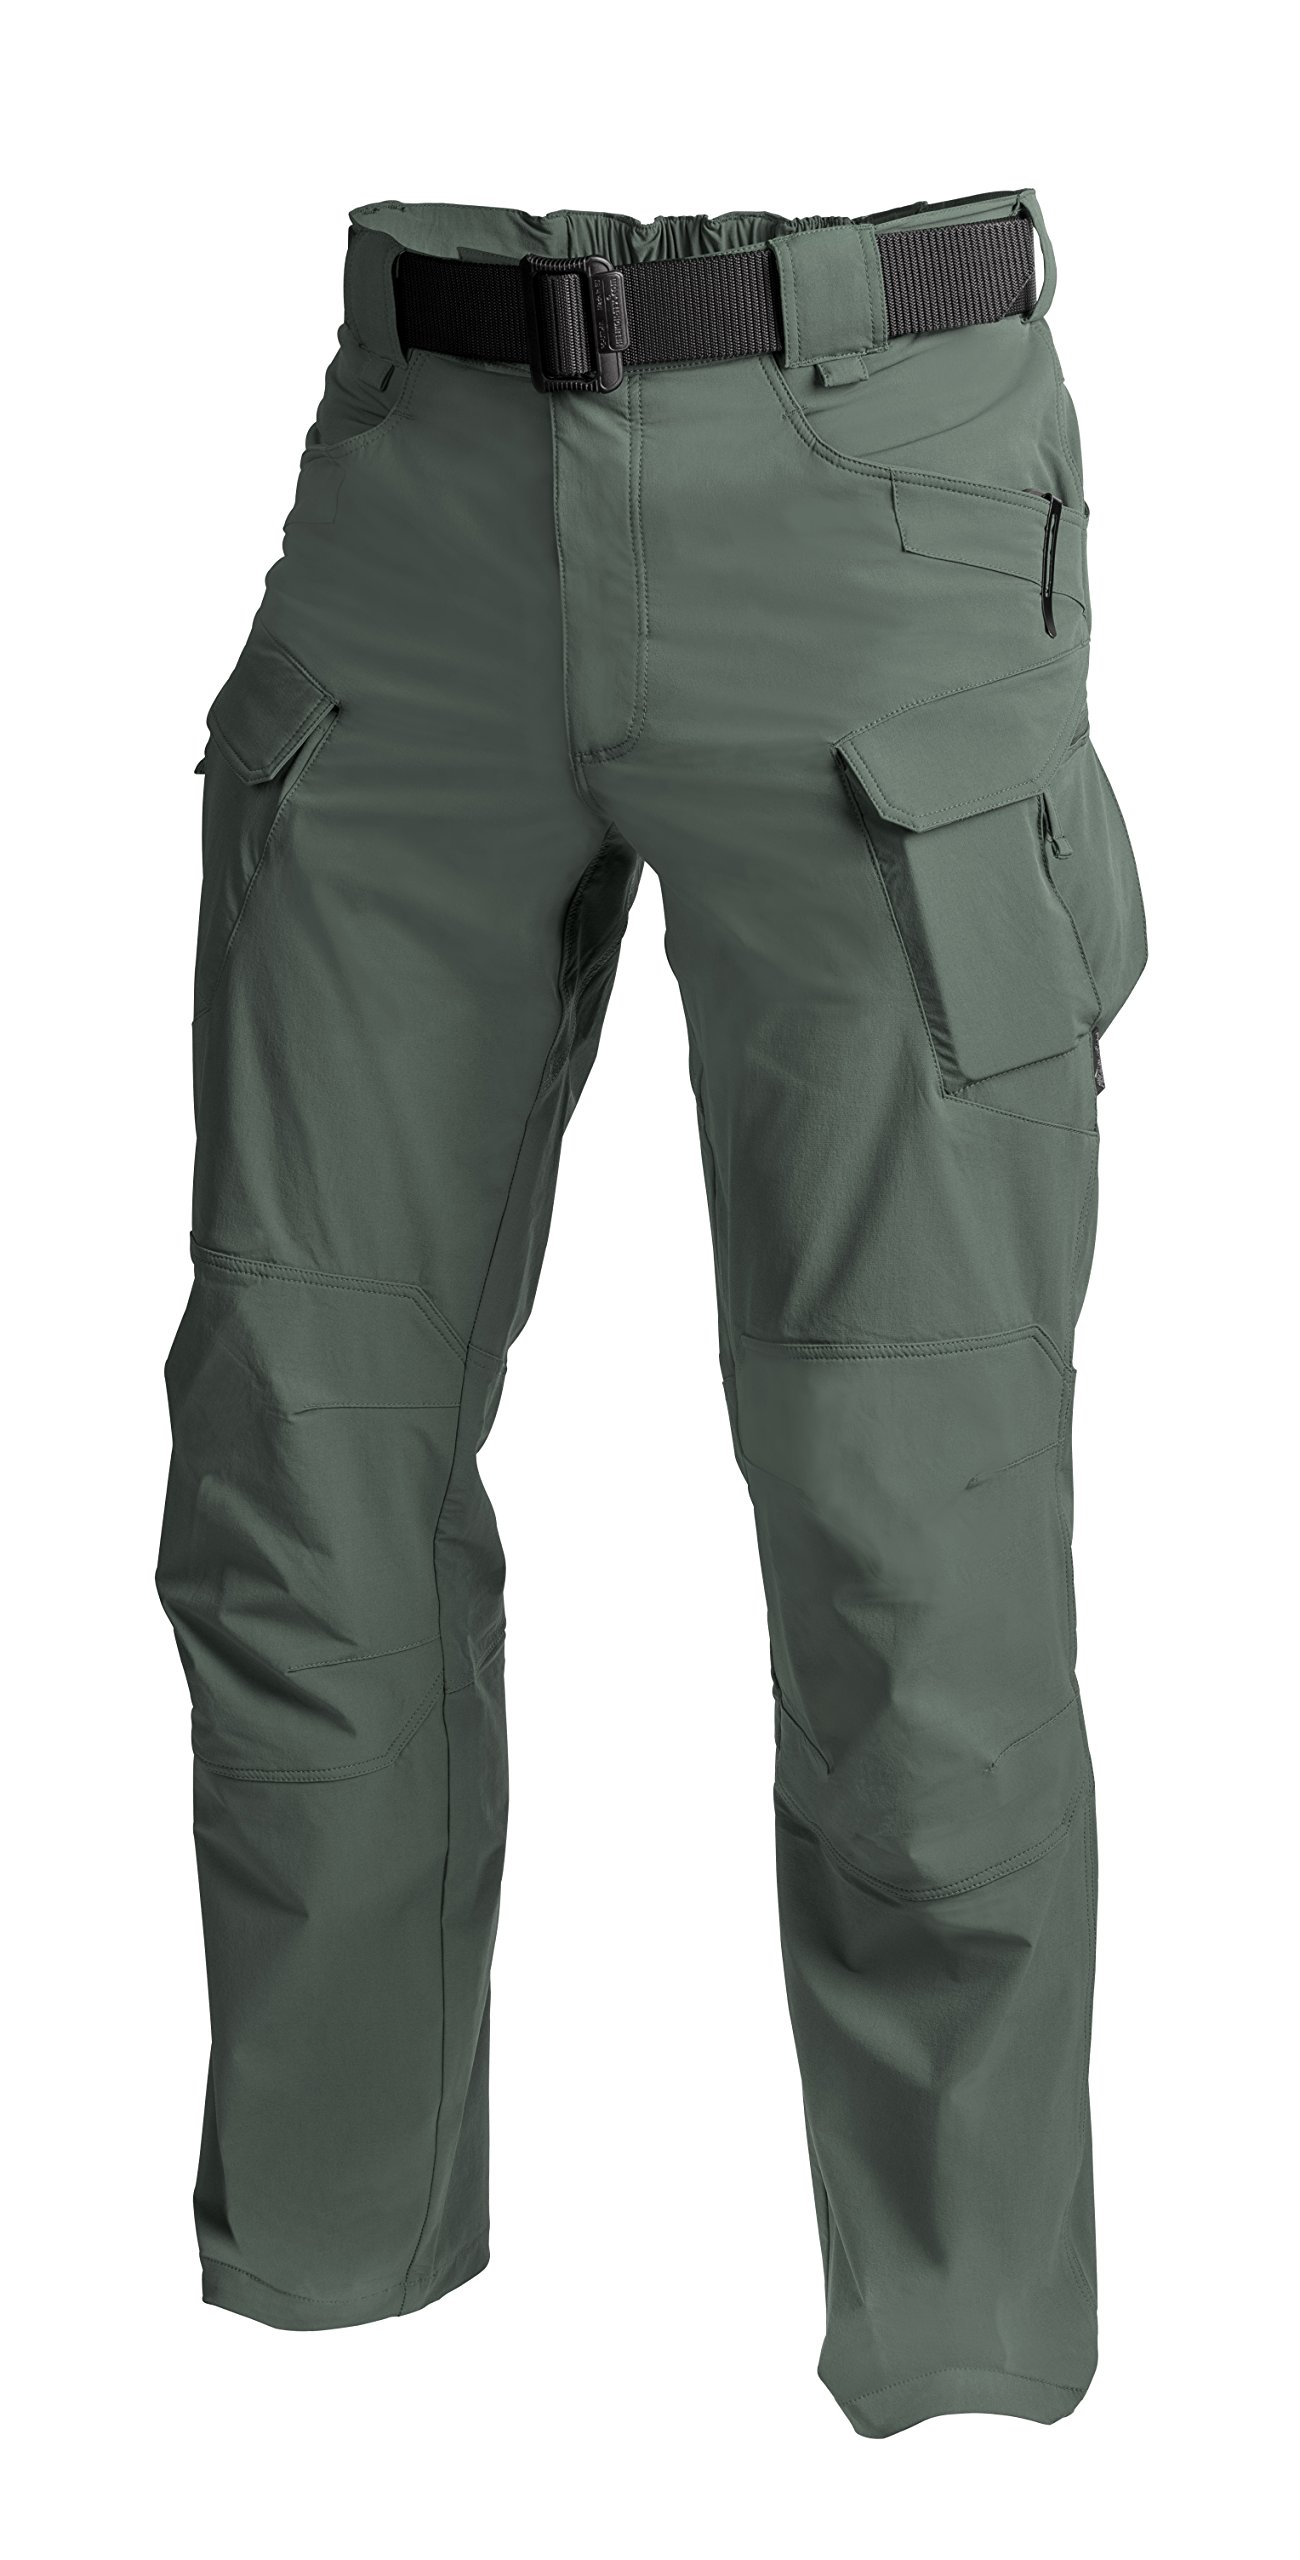 f6827abac5033 Best Rated in Men's Hiking Pants & Helpful Customer Reviews - Amazon.com